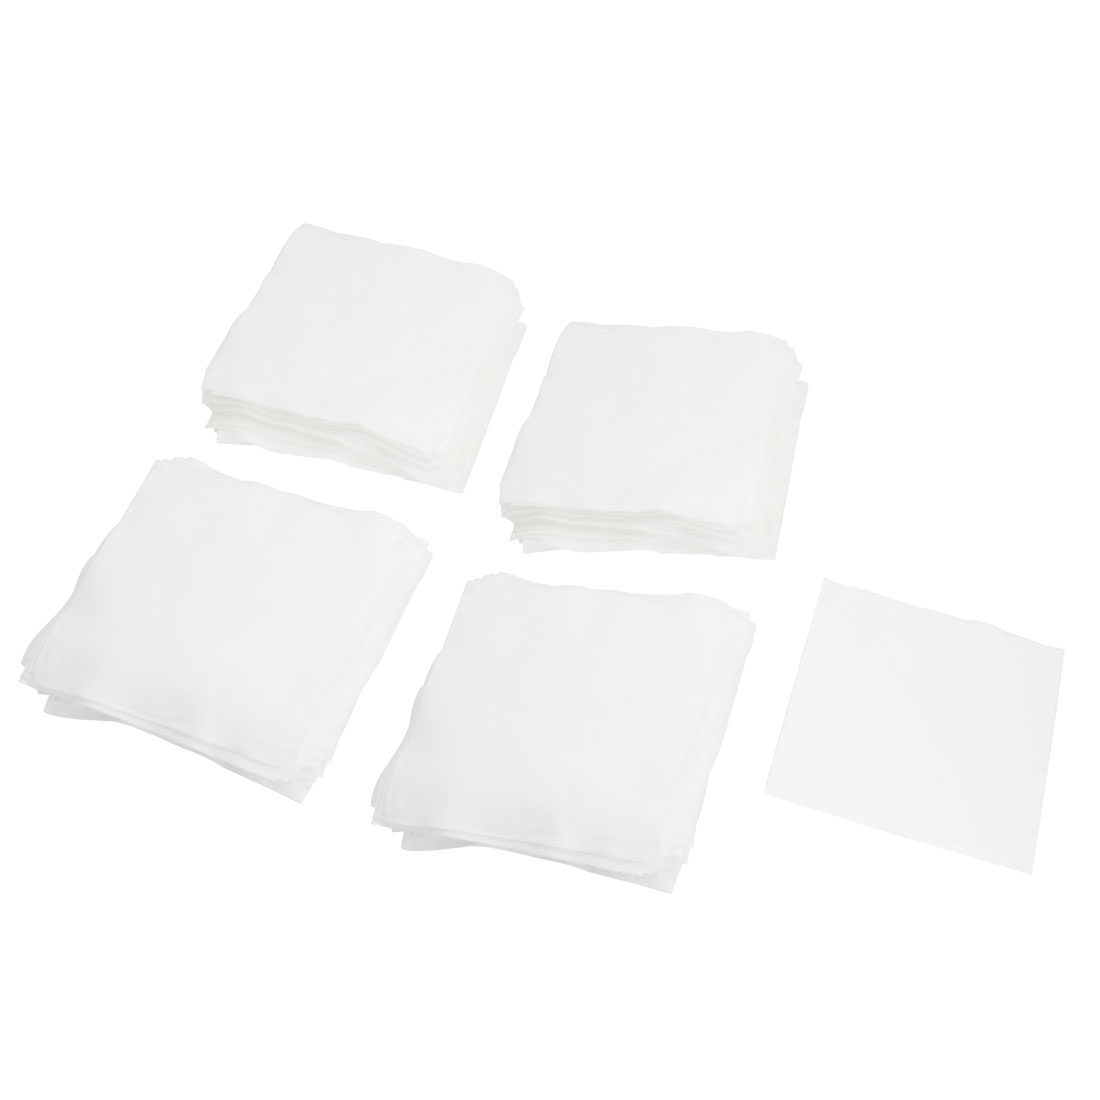 "200 Pcs 4"" x 4"" White Dustless Cleanroom Wiper Wiping Cloth"